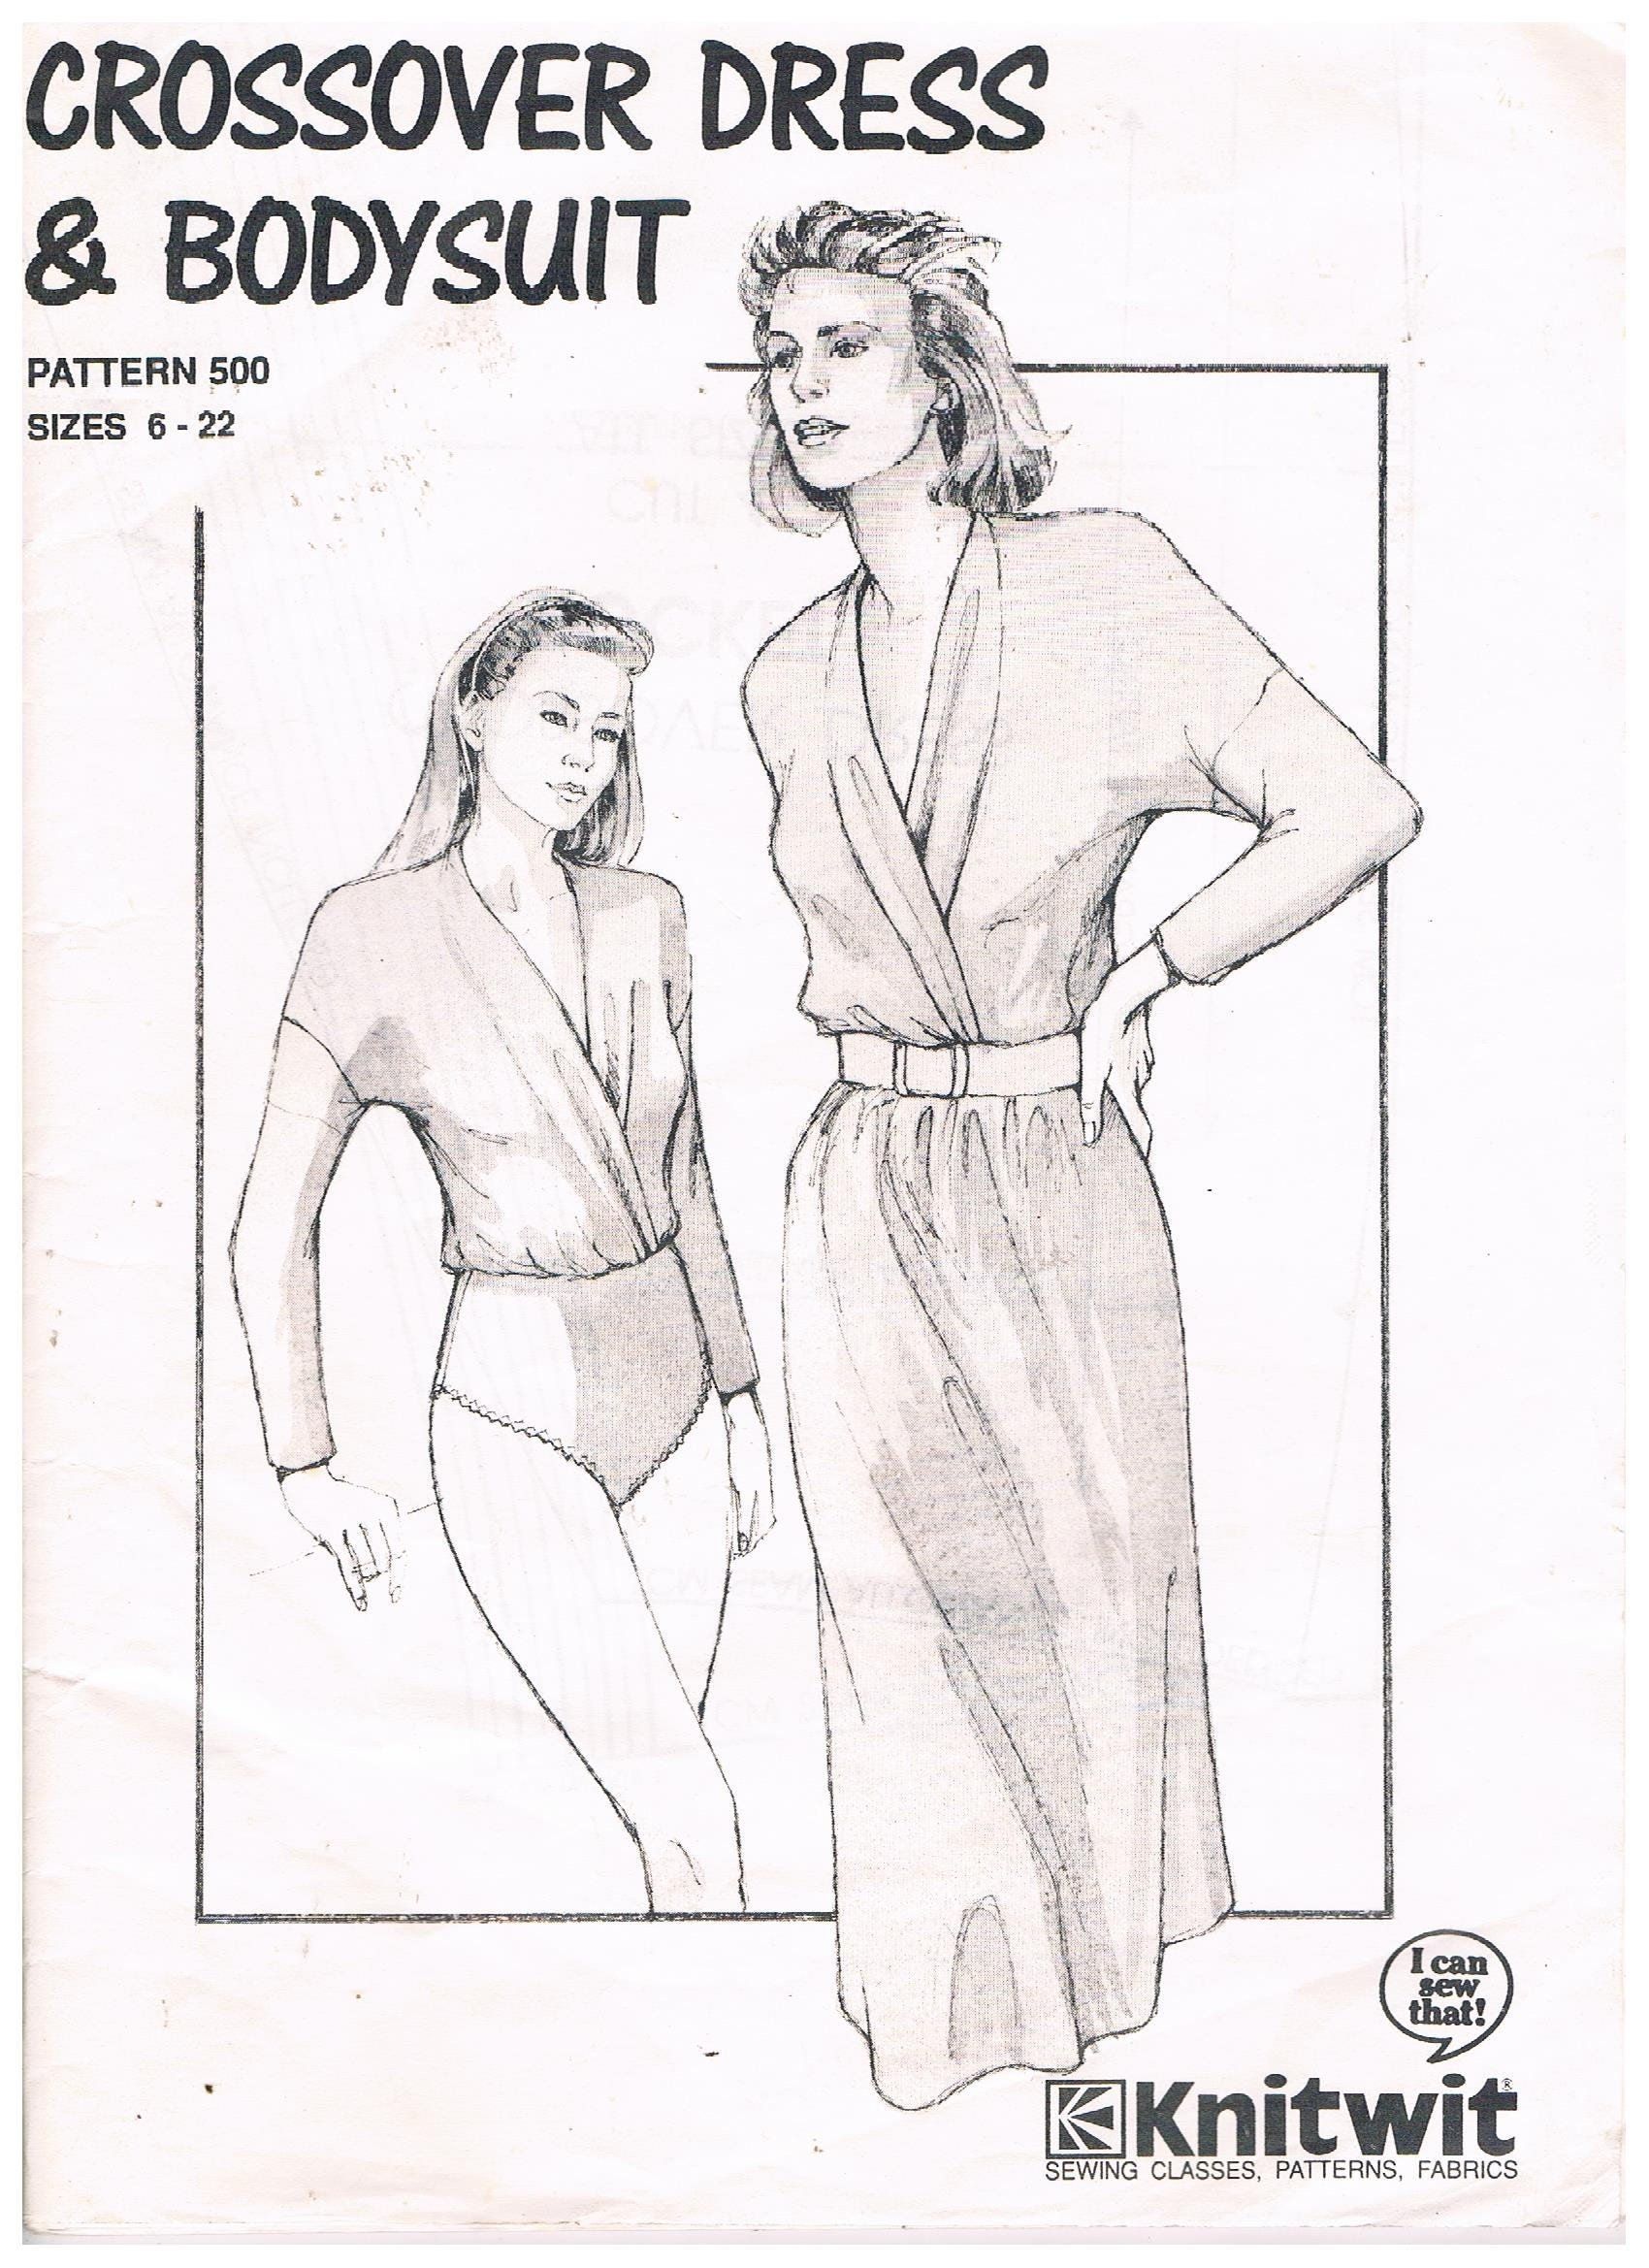 Crossover Dress & Bodysuit - sizes 6 to 22 by Knitwit Pattern No ...